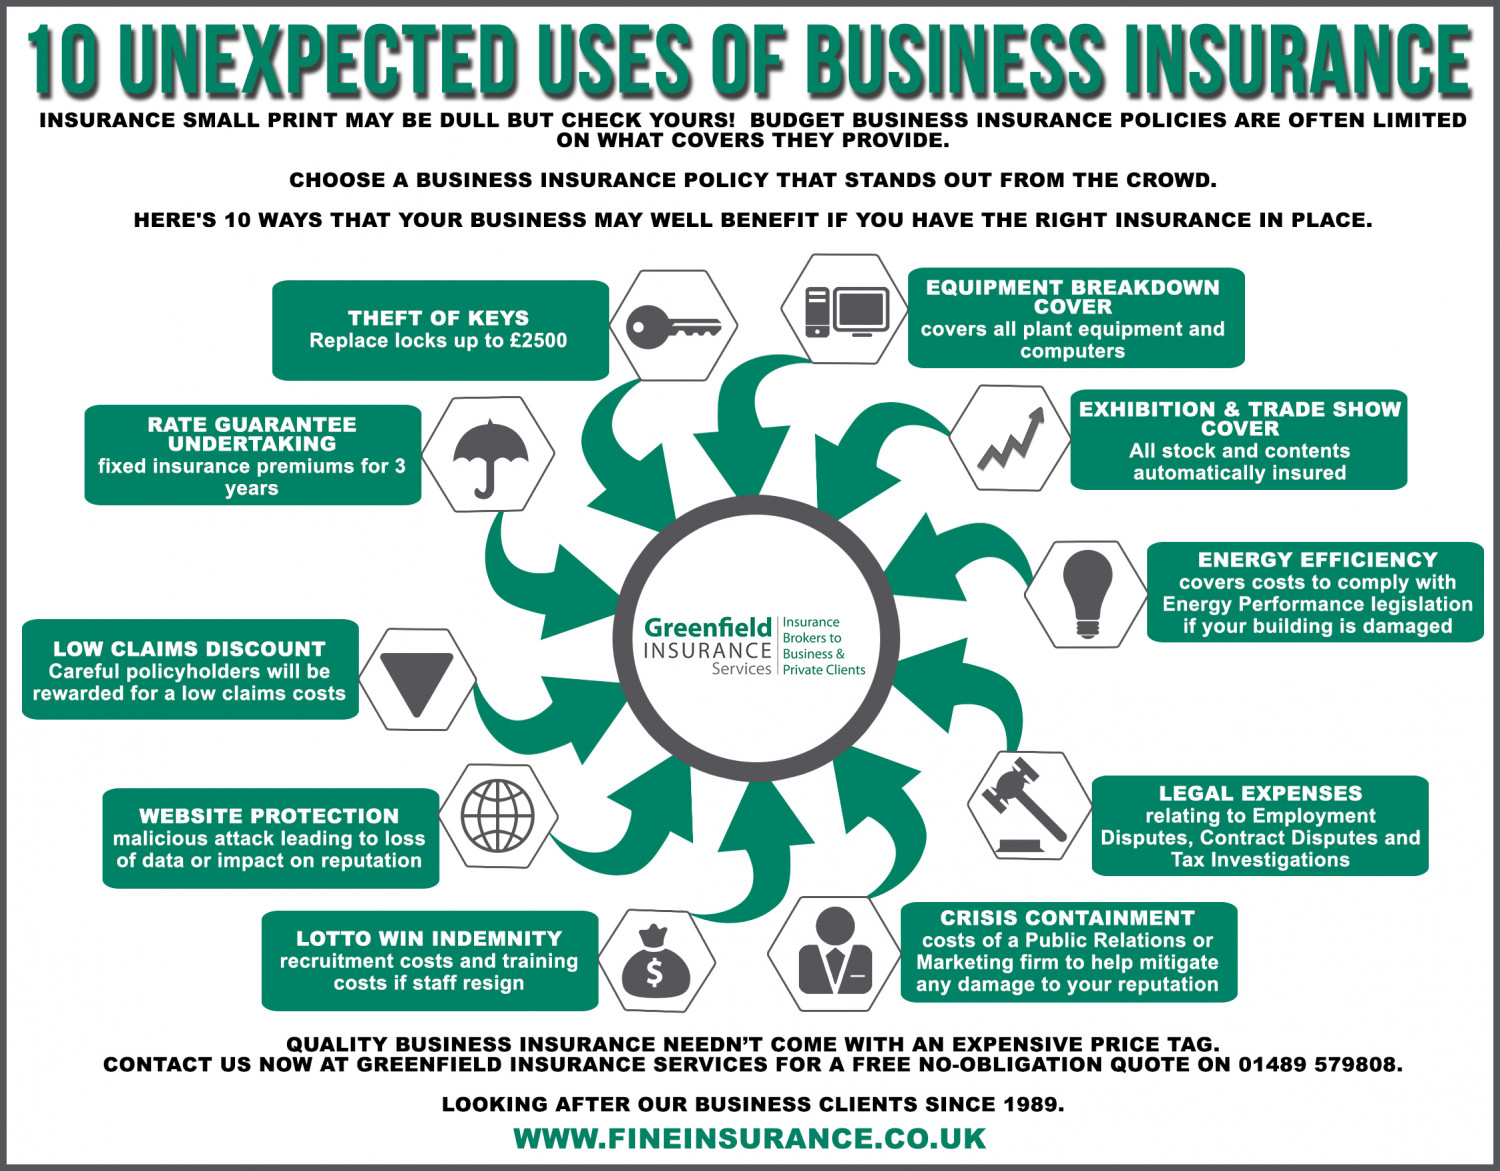 10 Unexpected Uses of Business Insurance Infographic